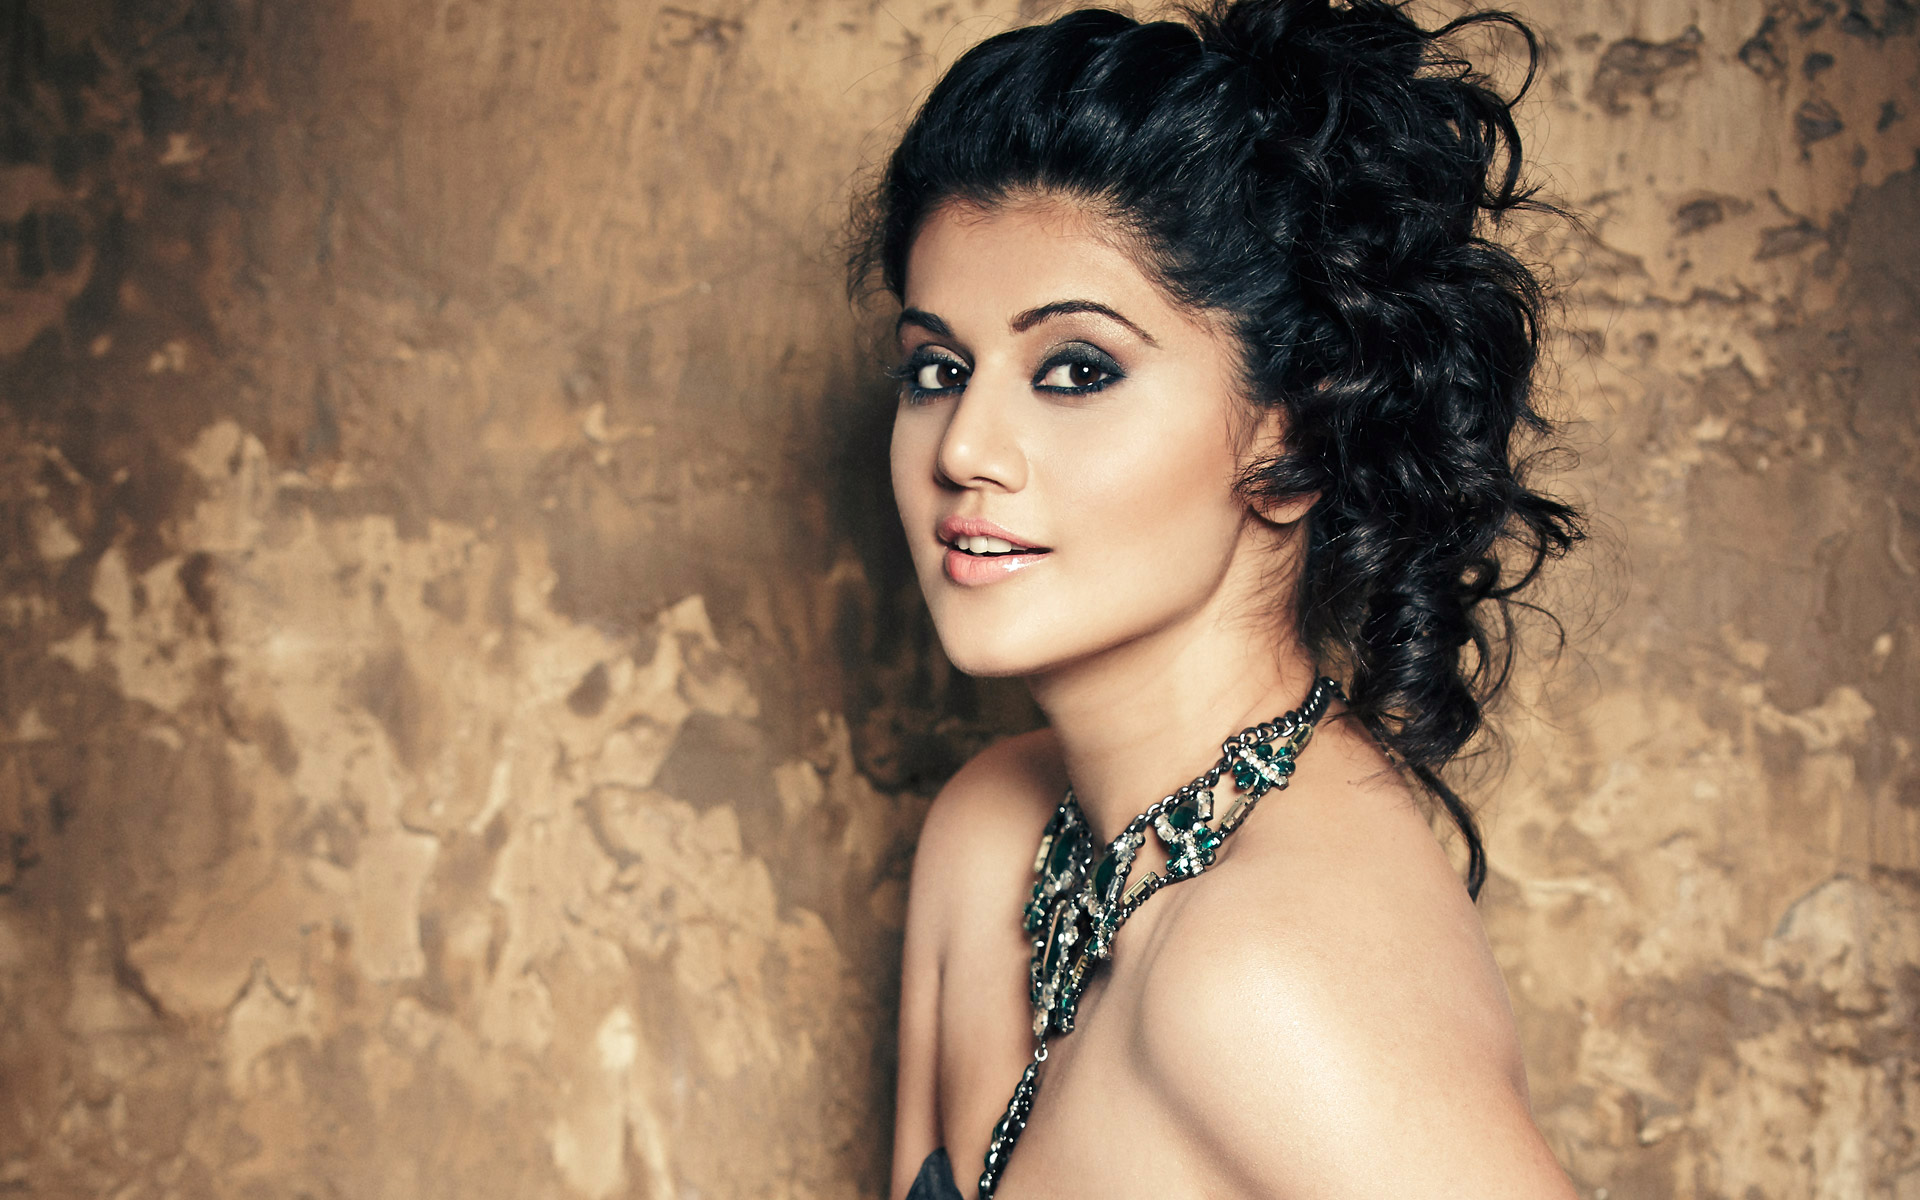 Celebrites Taapsee Pannu nudes (43 photos), Ass, Sideboobs, Boobs, see through 2020